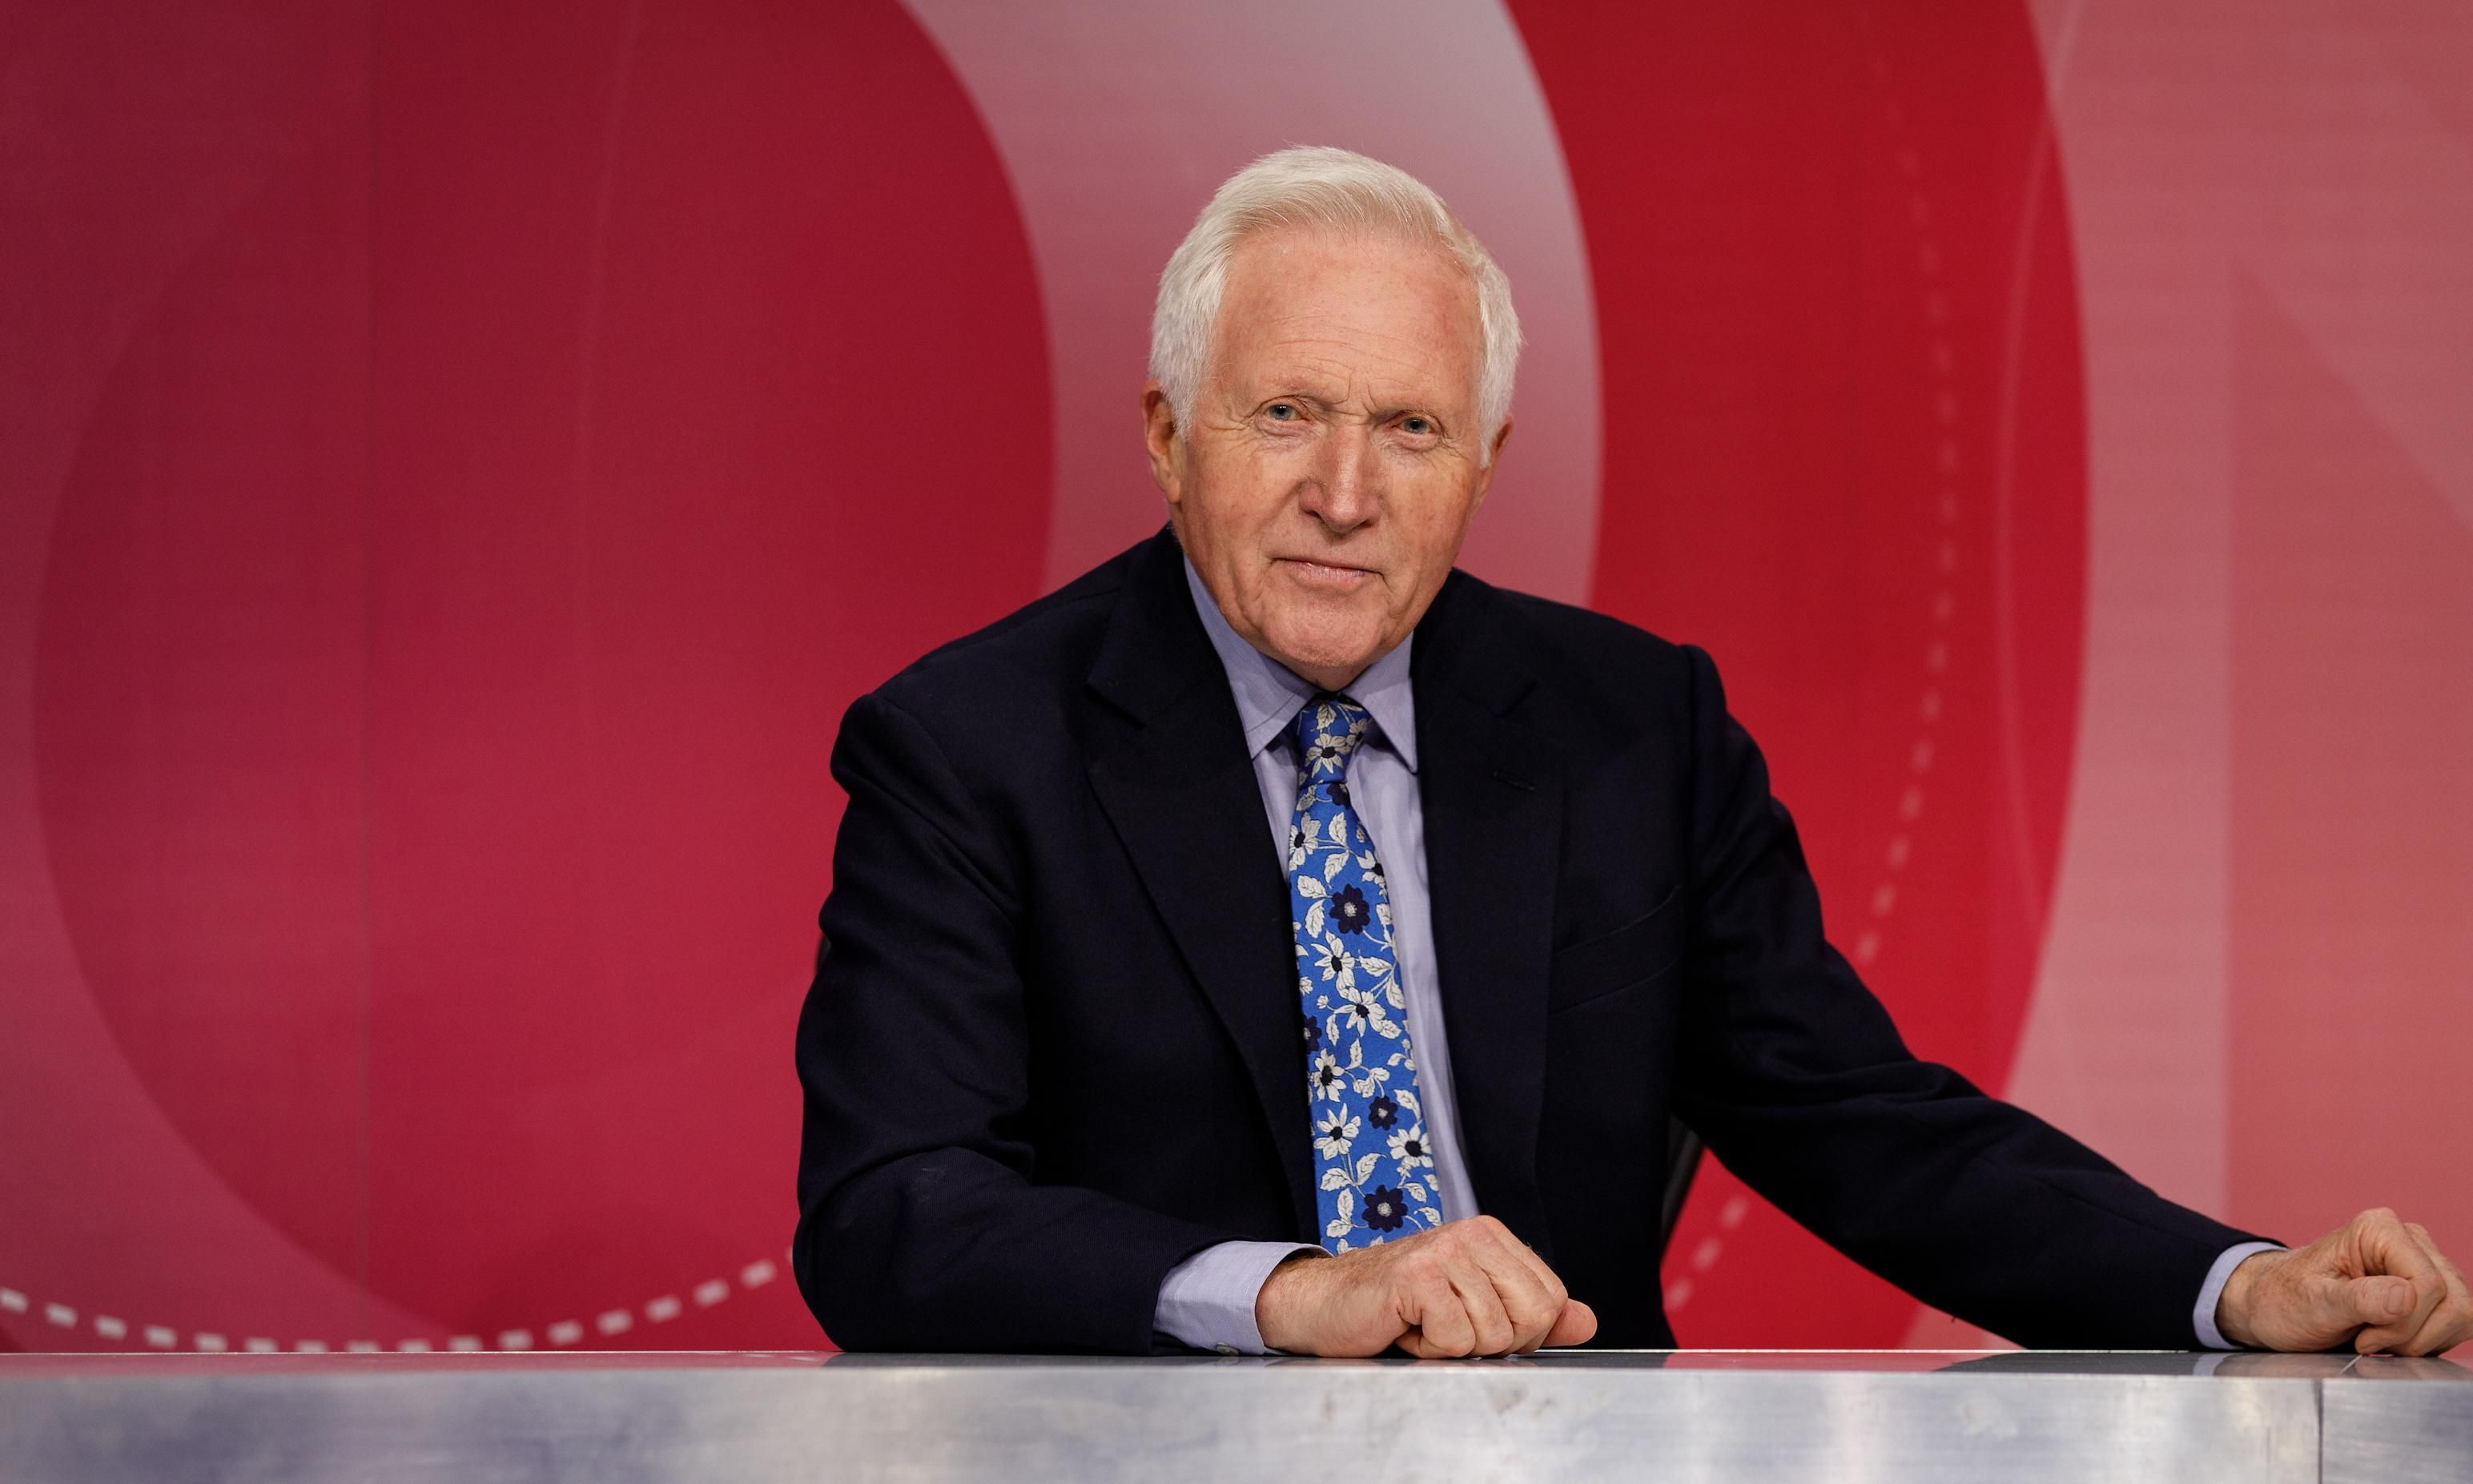 Have I Got News for You: David Dimbleby to host satirical TV show